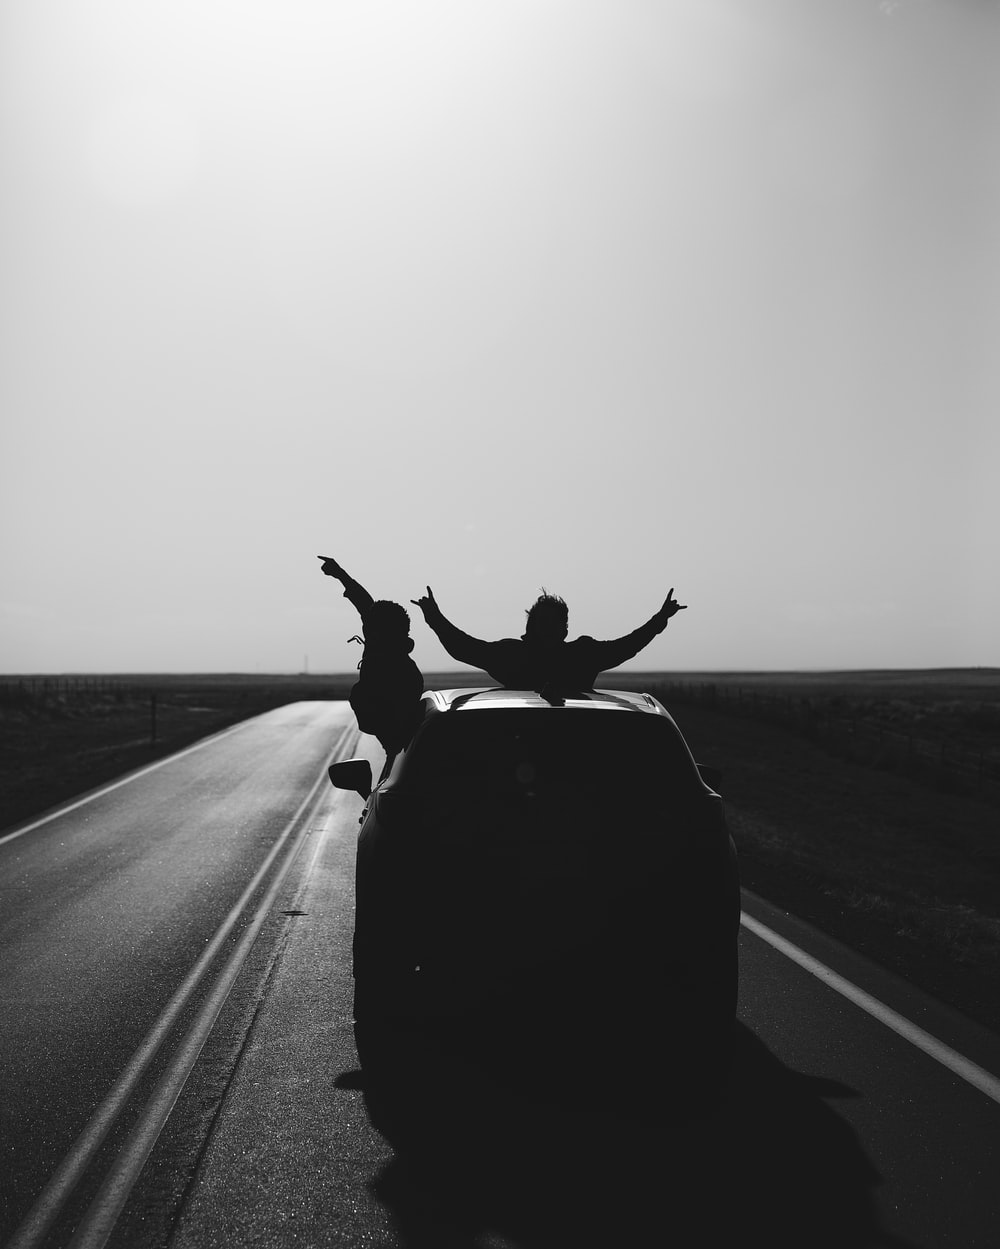 grayscale photo of man riding on motorcycle on road